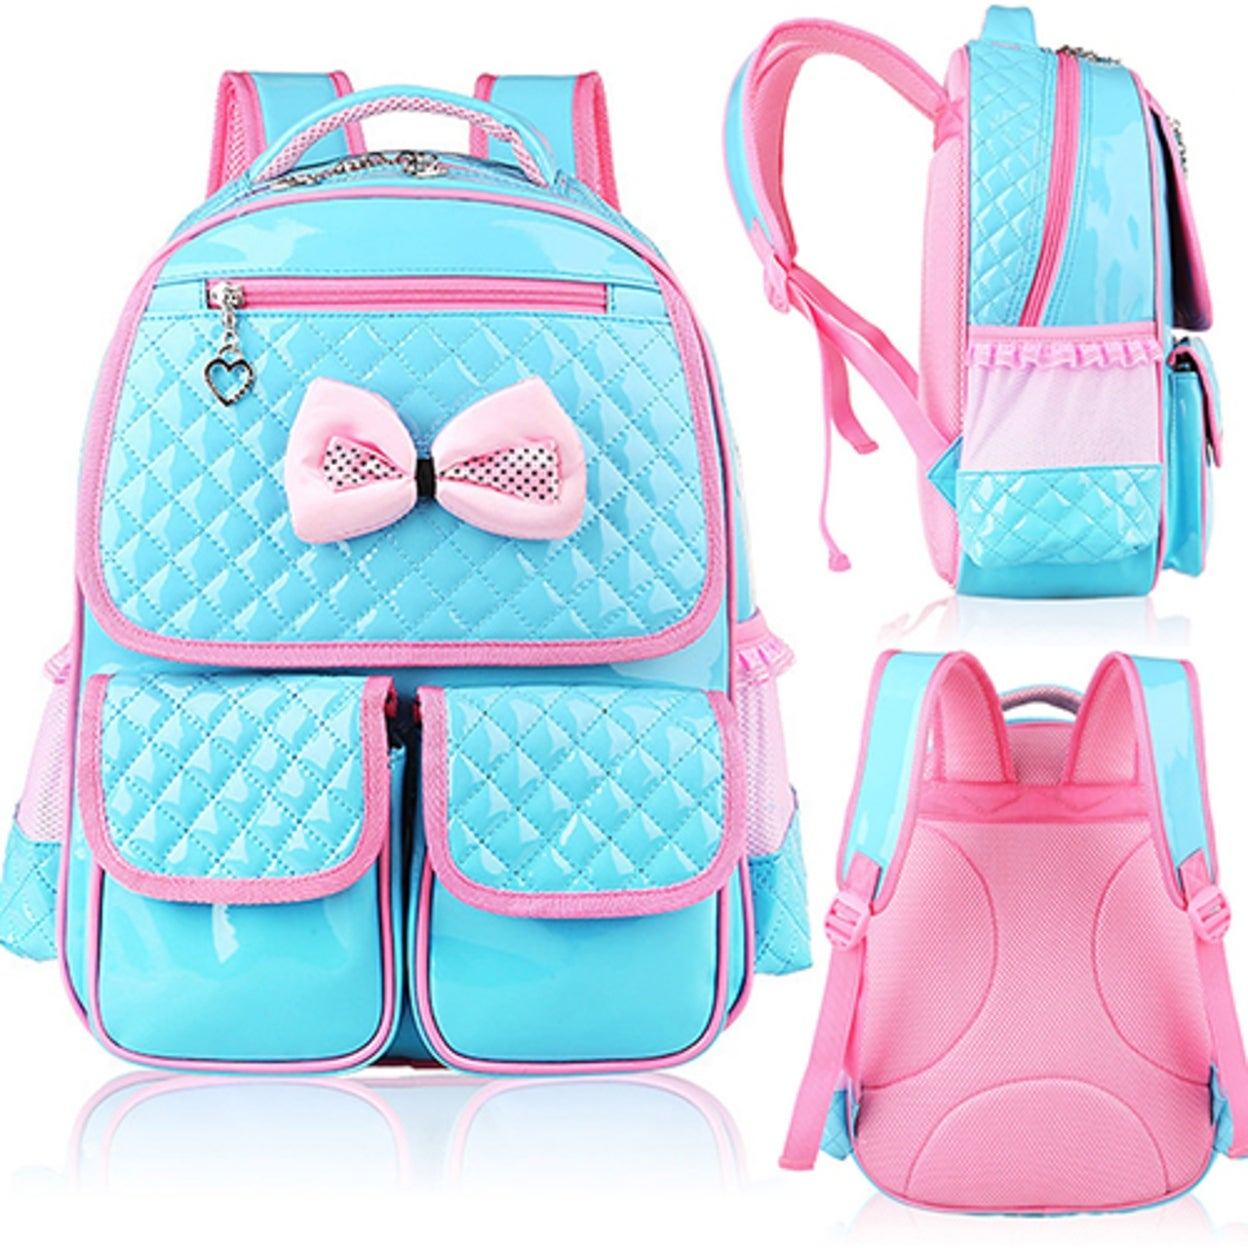 30515308d6 Shop Kid Girls Princess Backpack Cute Bowknot Faux Leather Book Storage School  Bag - Free Shipping On Orders Over  45 - Overstock - 23174857